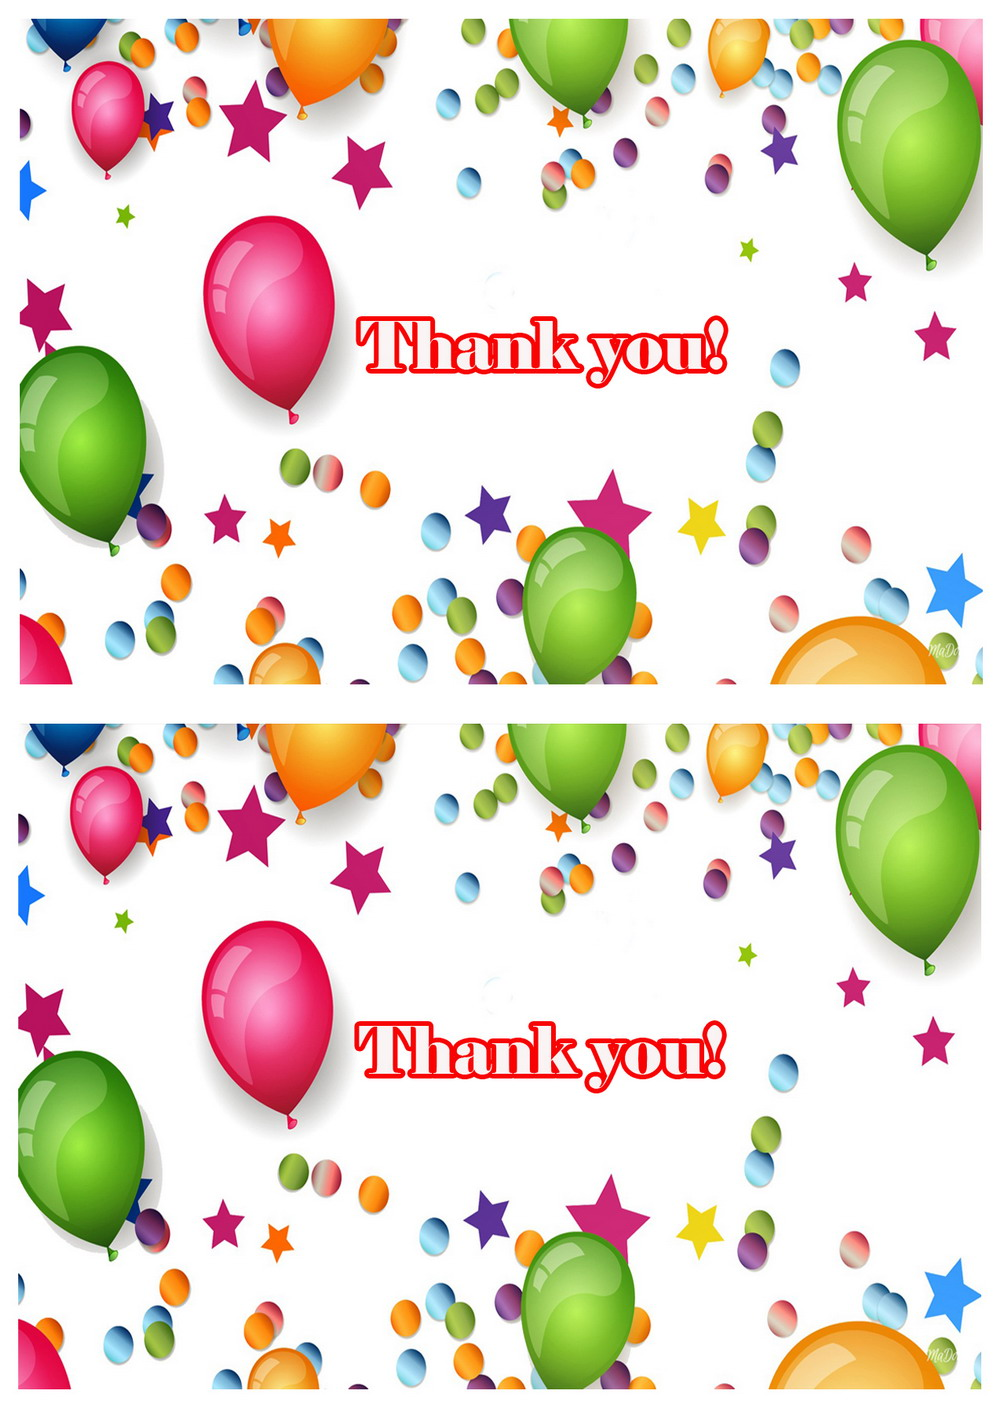 Click Image To Find More Men S Fashion: Balloons Thank You Cards